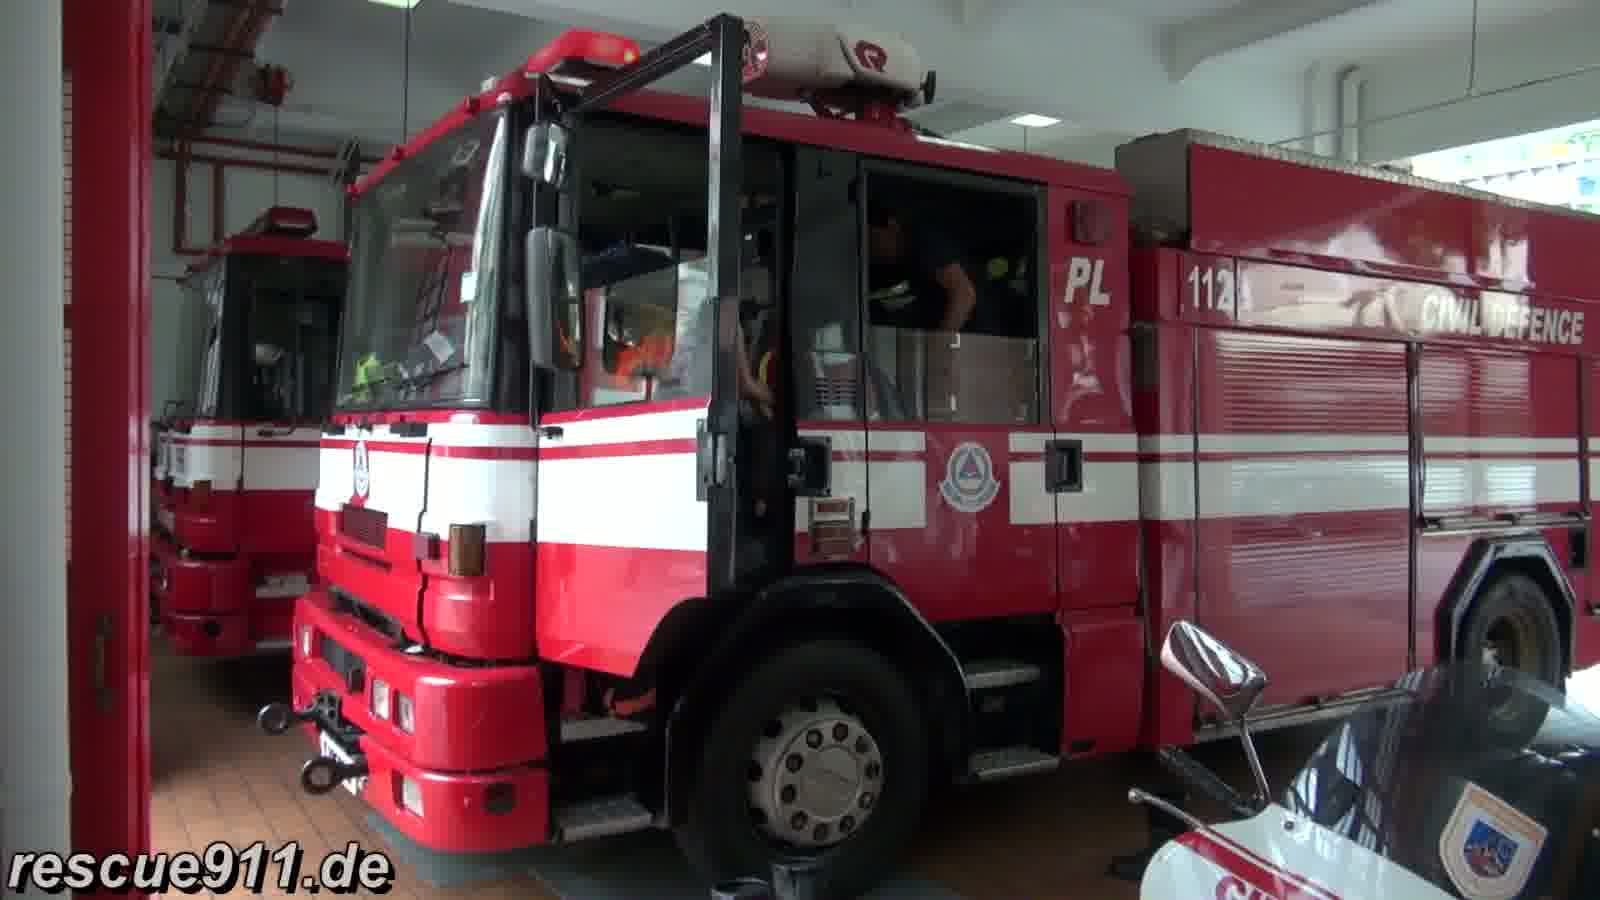 Pump ladder PL112 SCDF Central FS (stream)